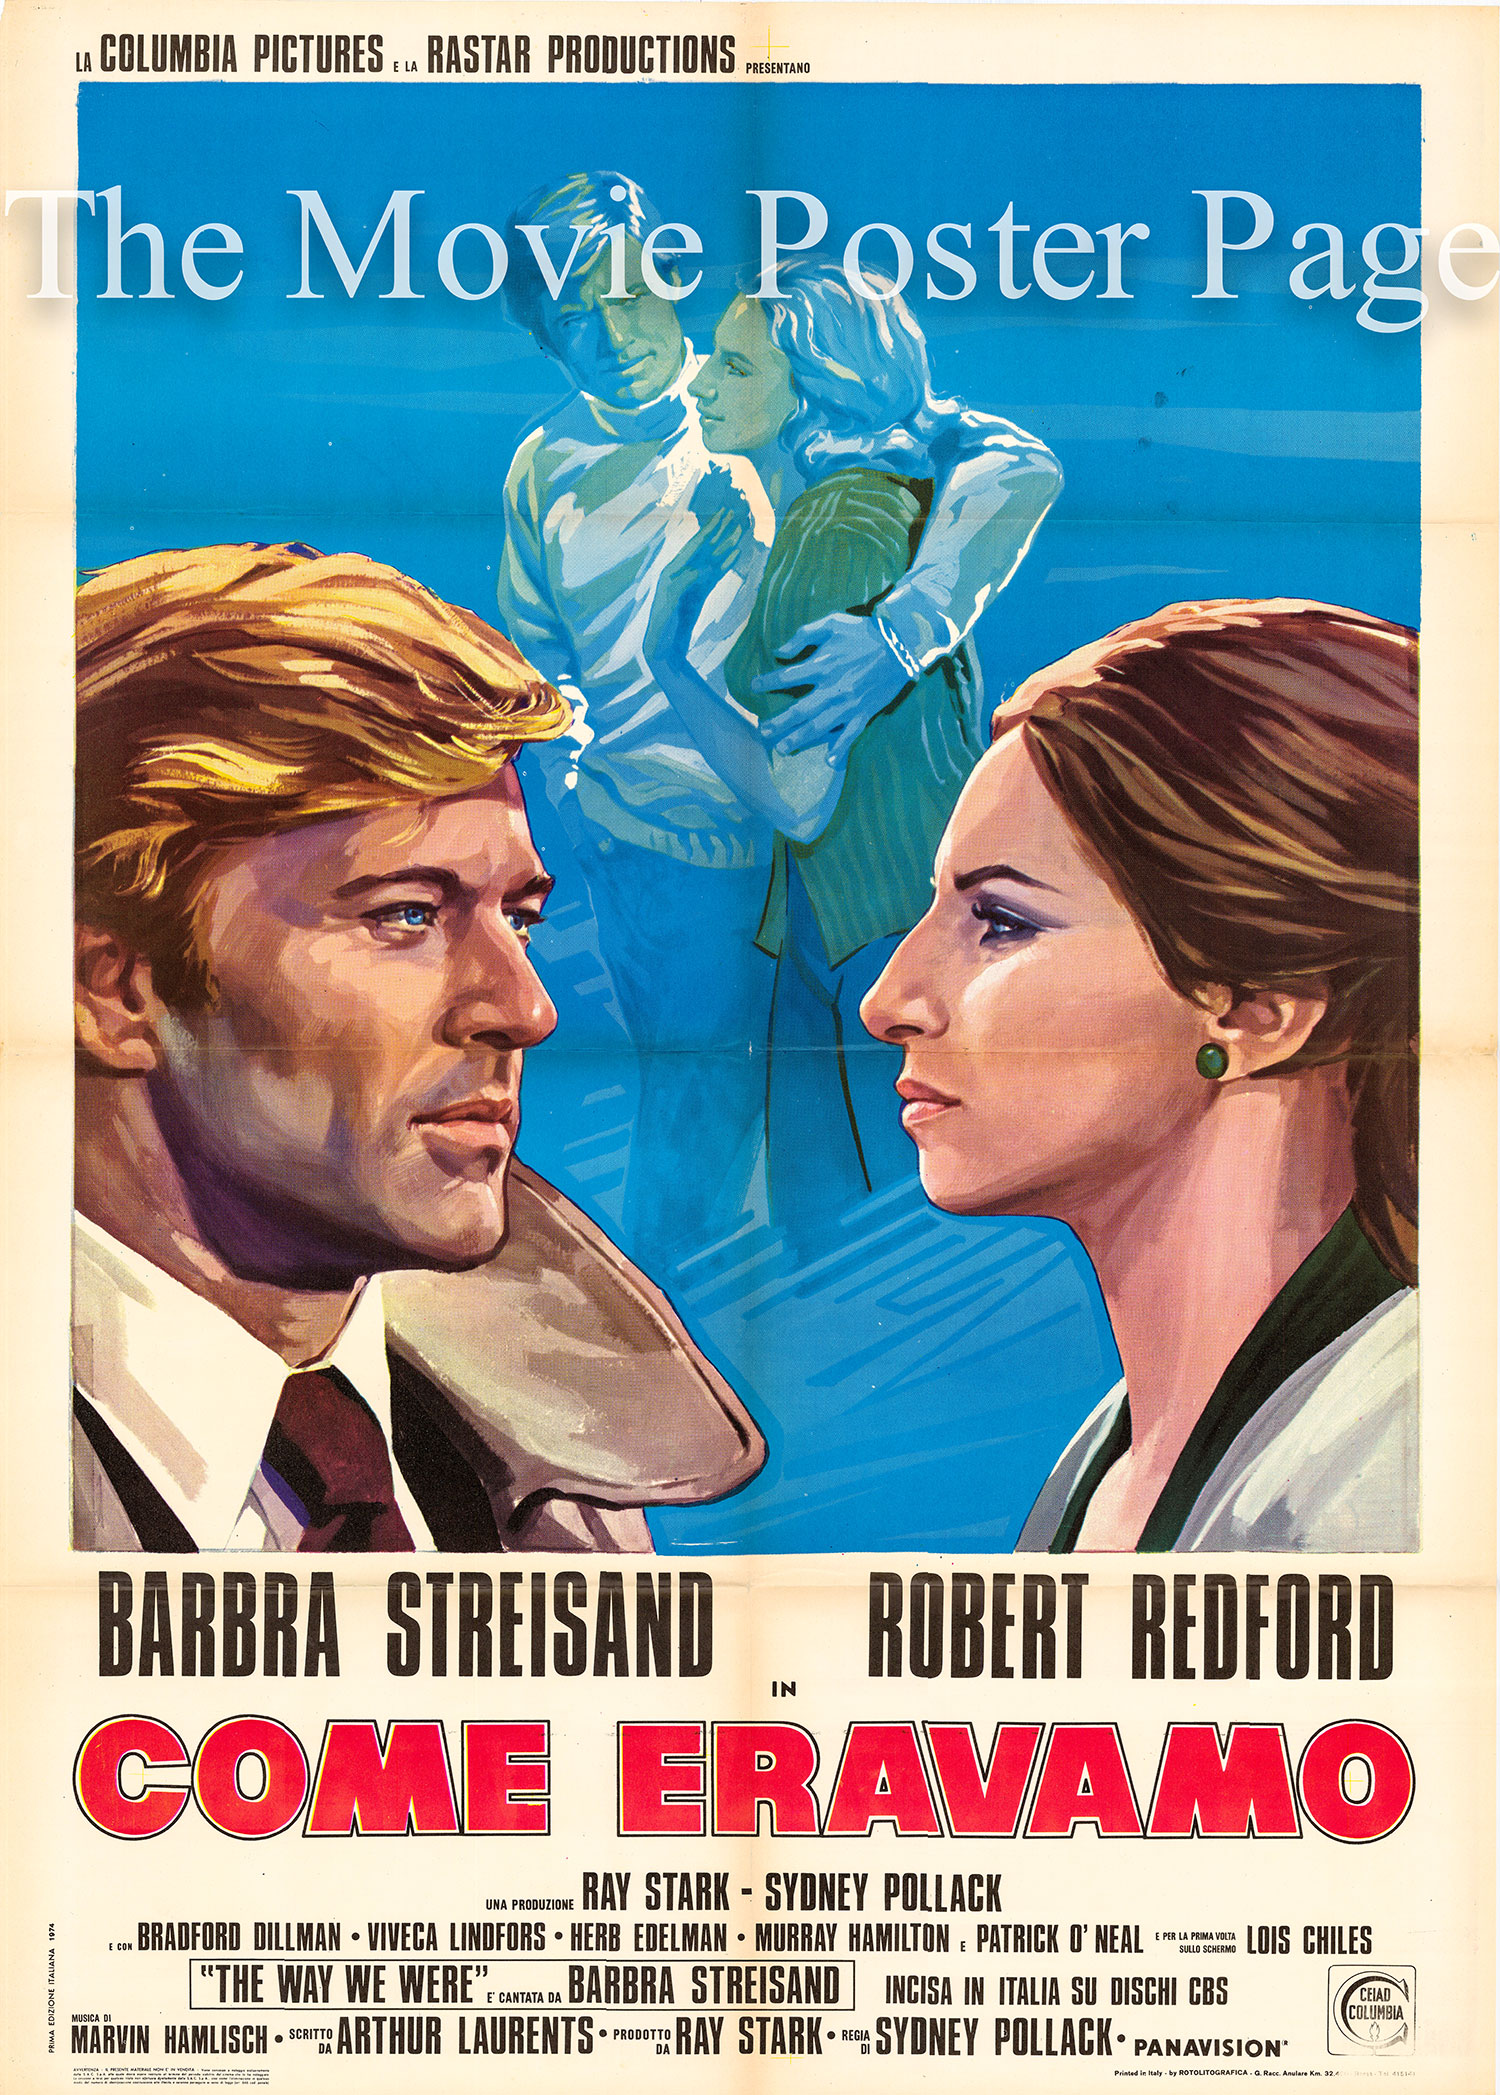 Pictured is an Italian two-sheet poster for the 1973 Sydney Pollack film <i>The Way We Were</a> starring Barbra Streisand.